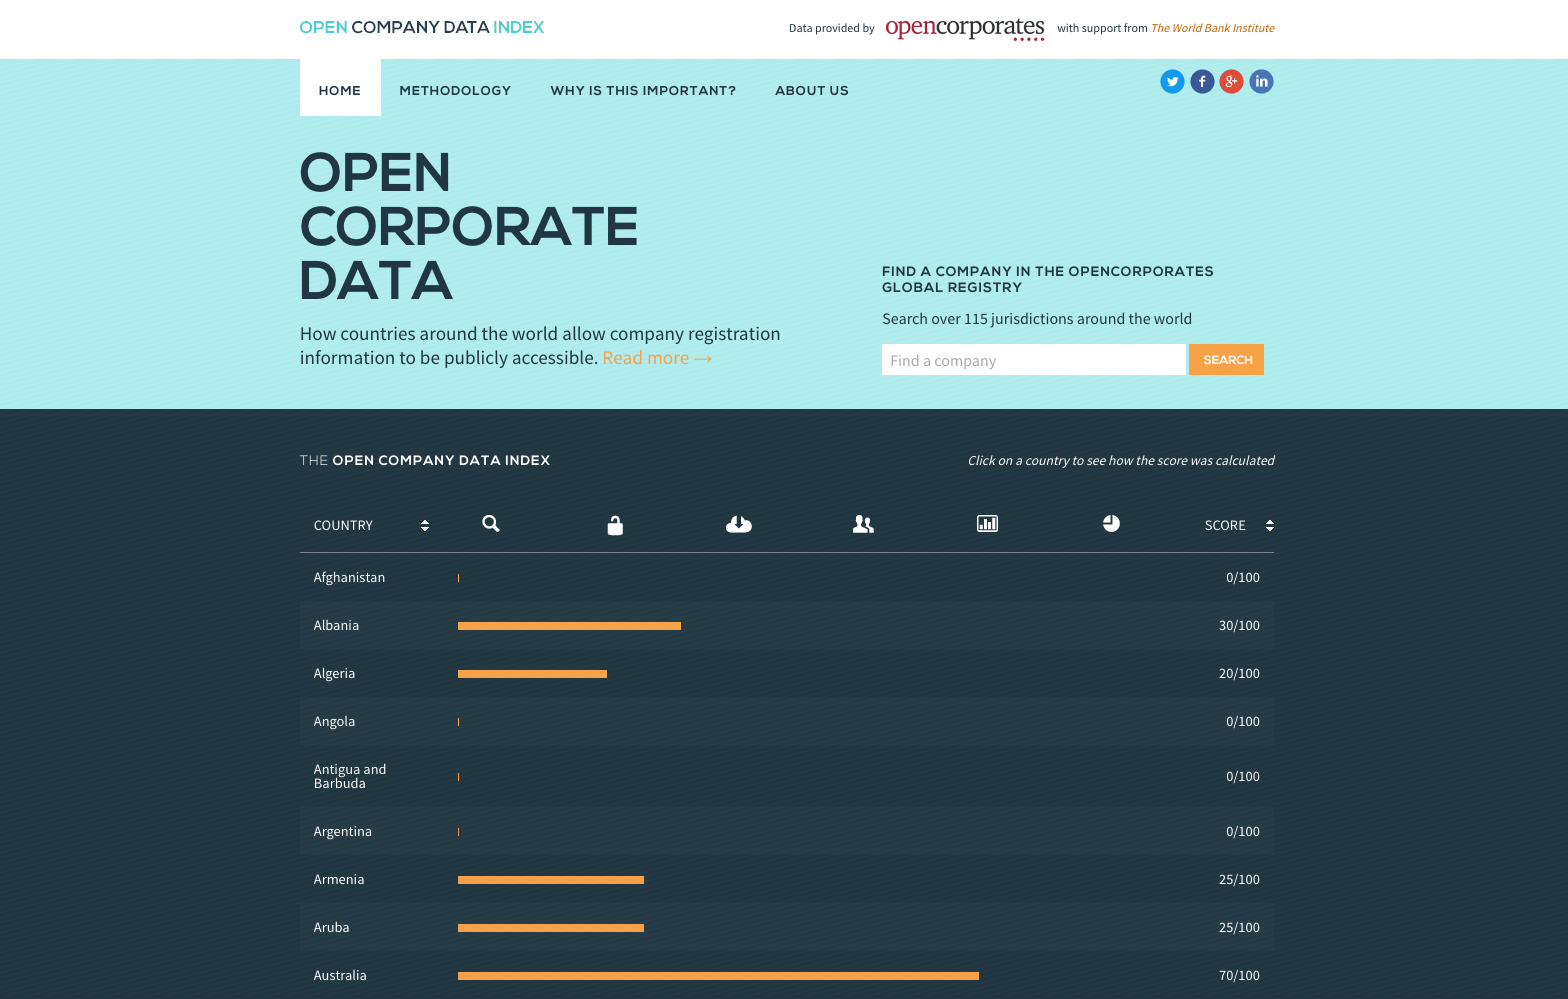 The Open Company Data Index